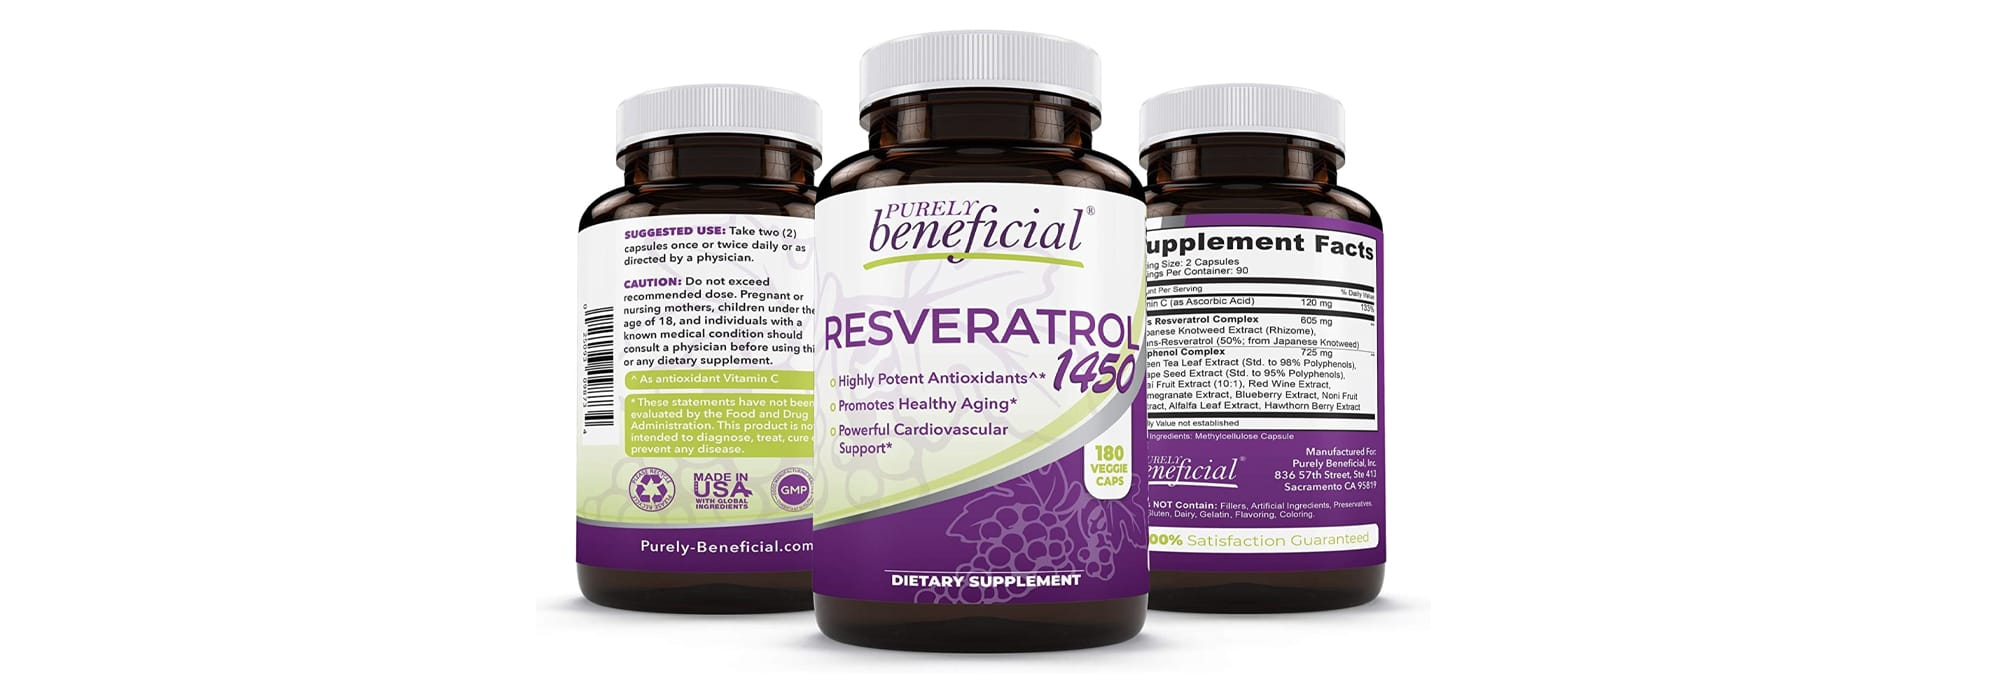 Resveratrol and Exercise